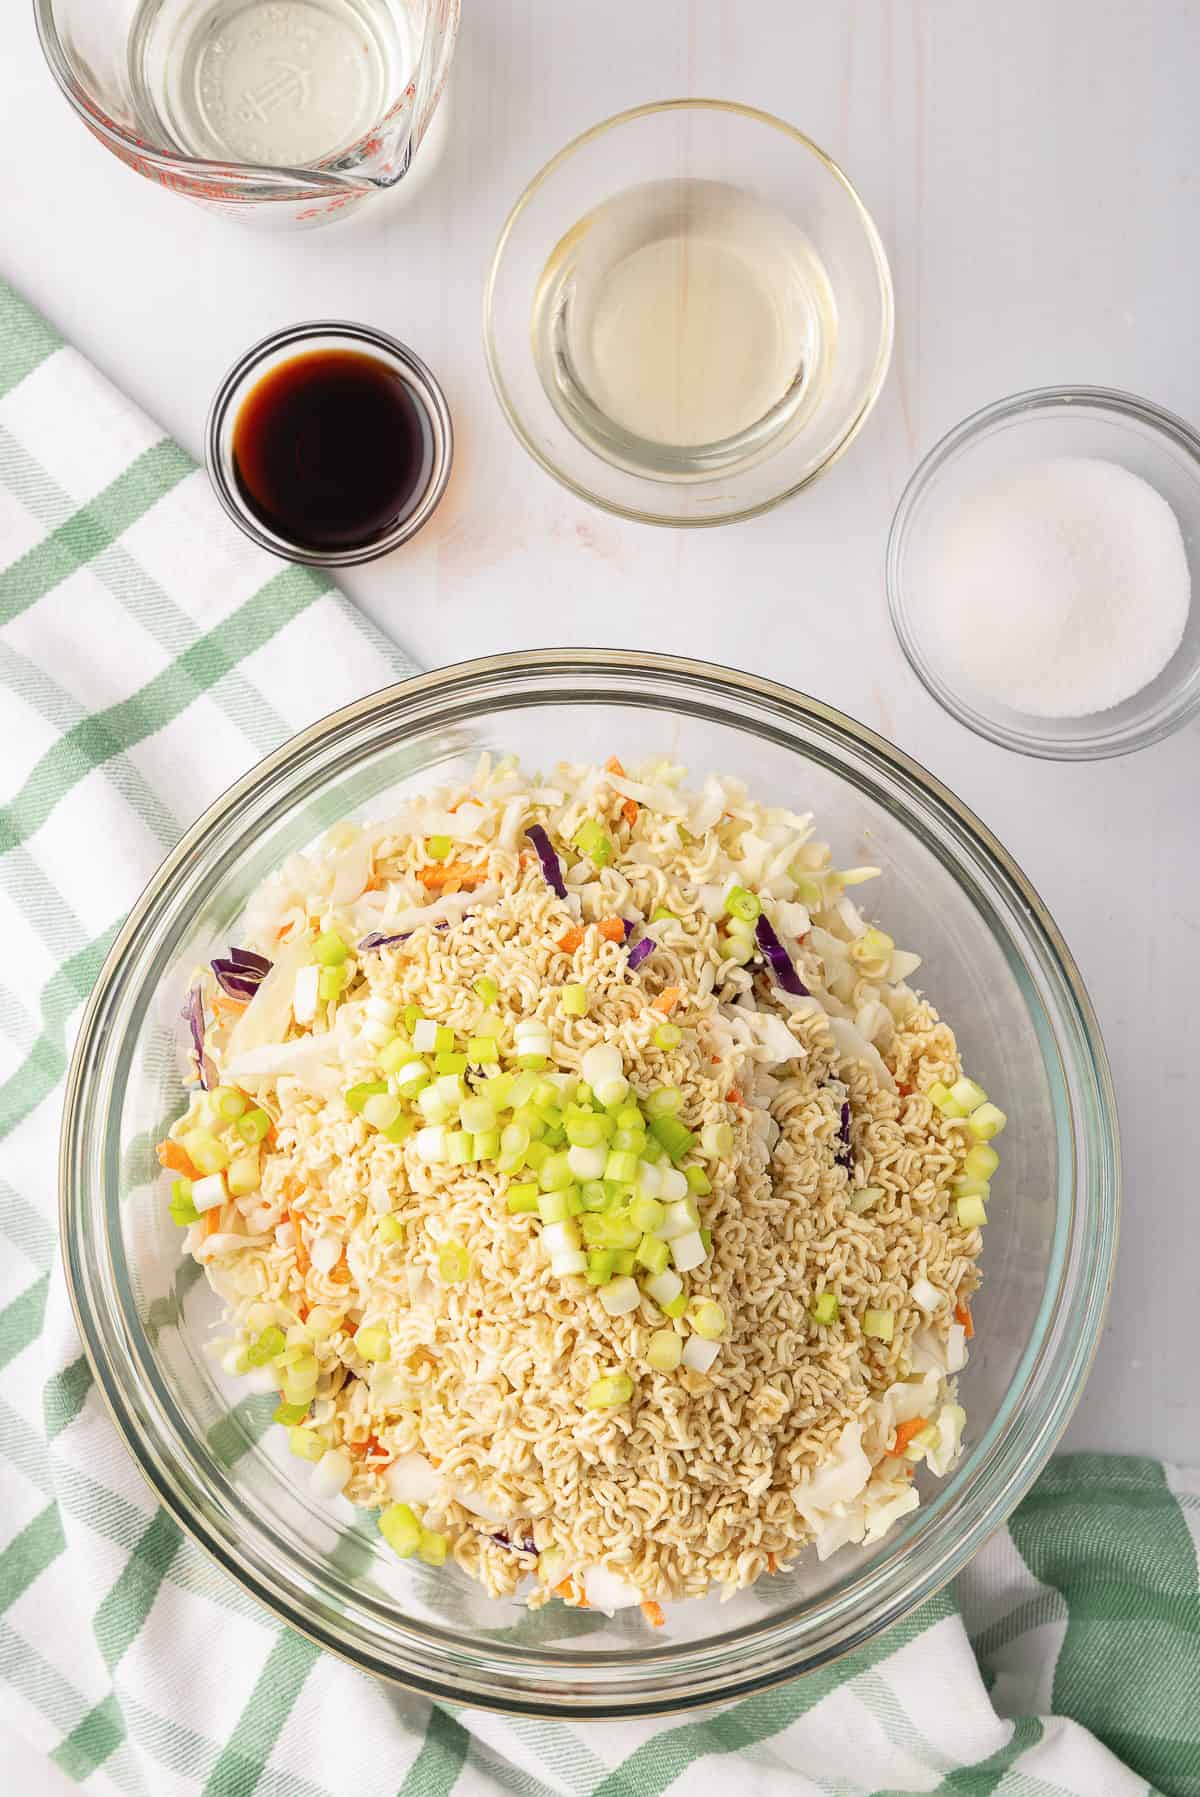 The salad ingredients are combined in a large glass mixing bowl.